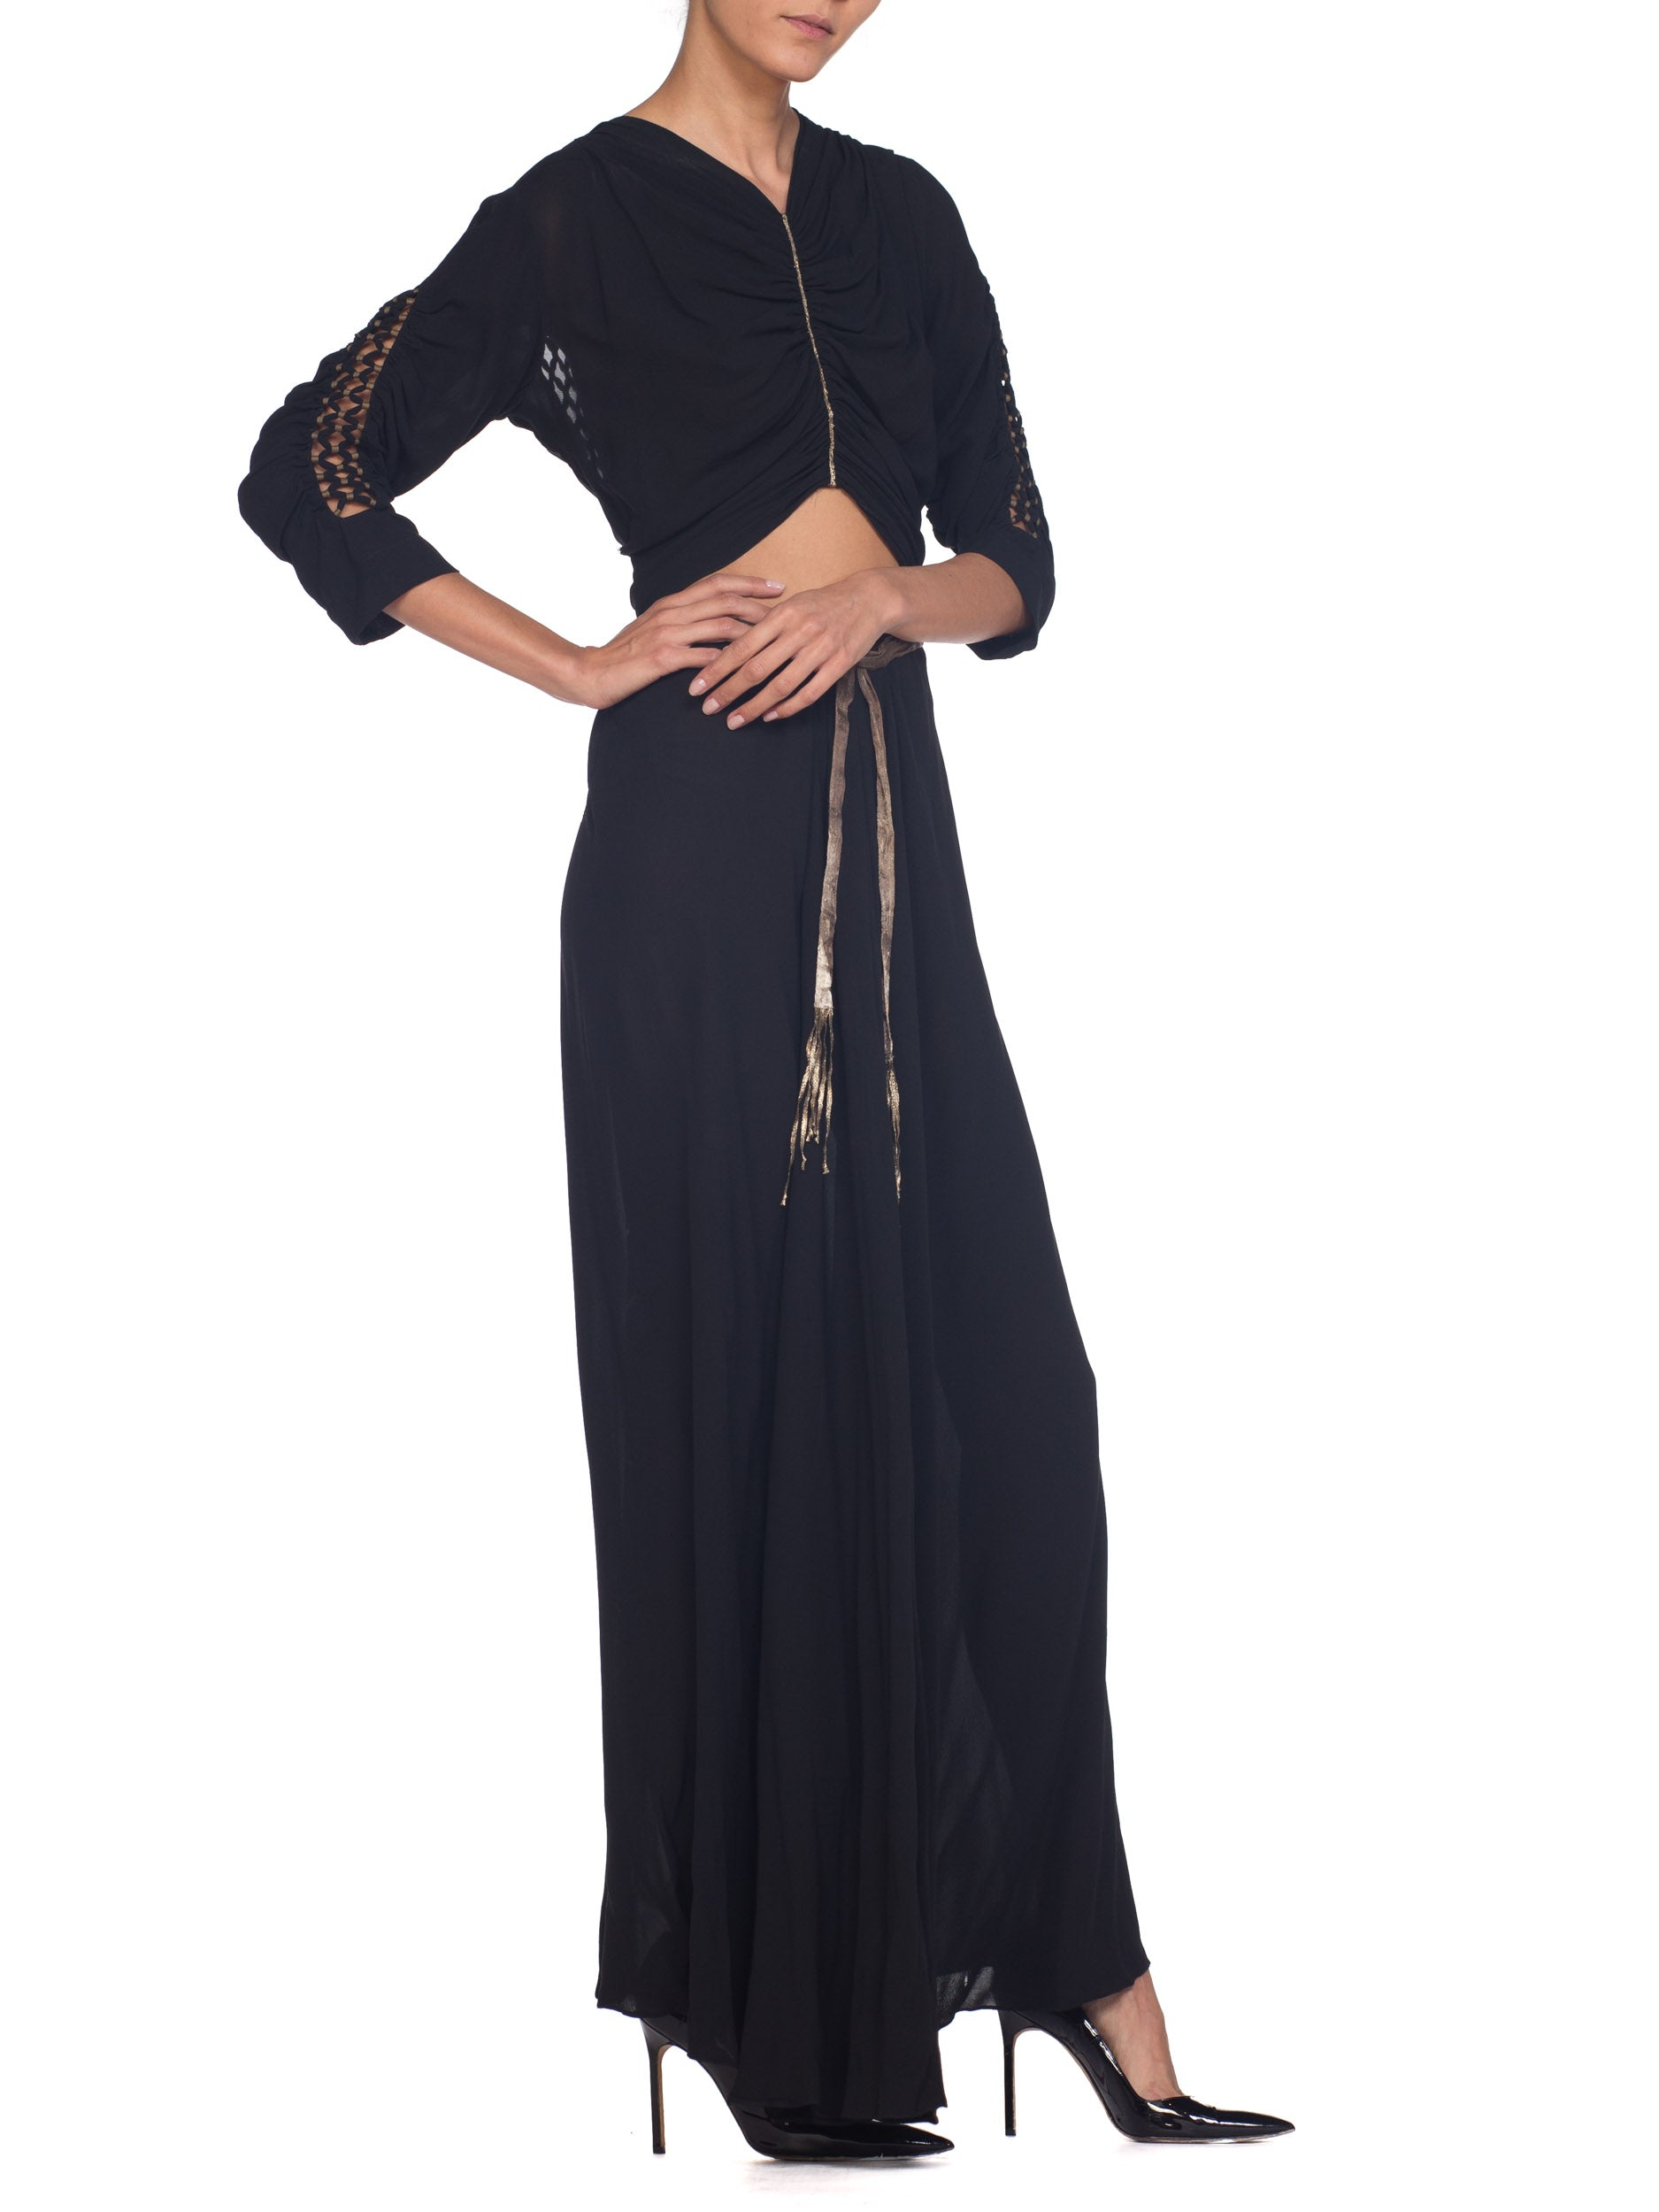 1930S Black Haute Couture Silk Chiffon Bare Midriff  Gown With Silver Lamé Detailed Lattice Work From Paris